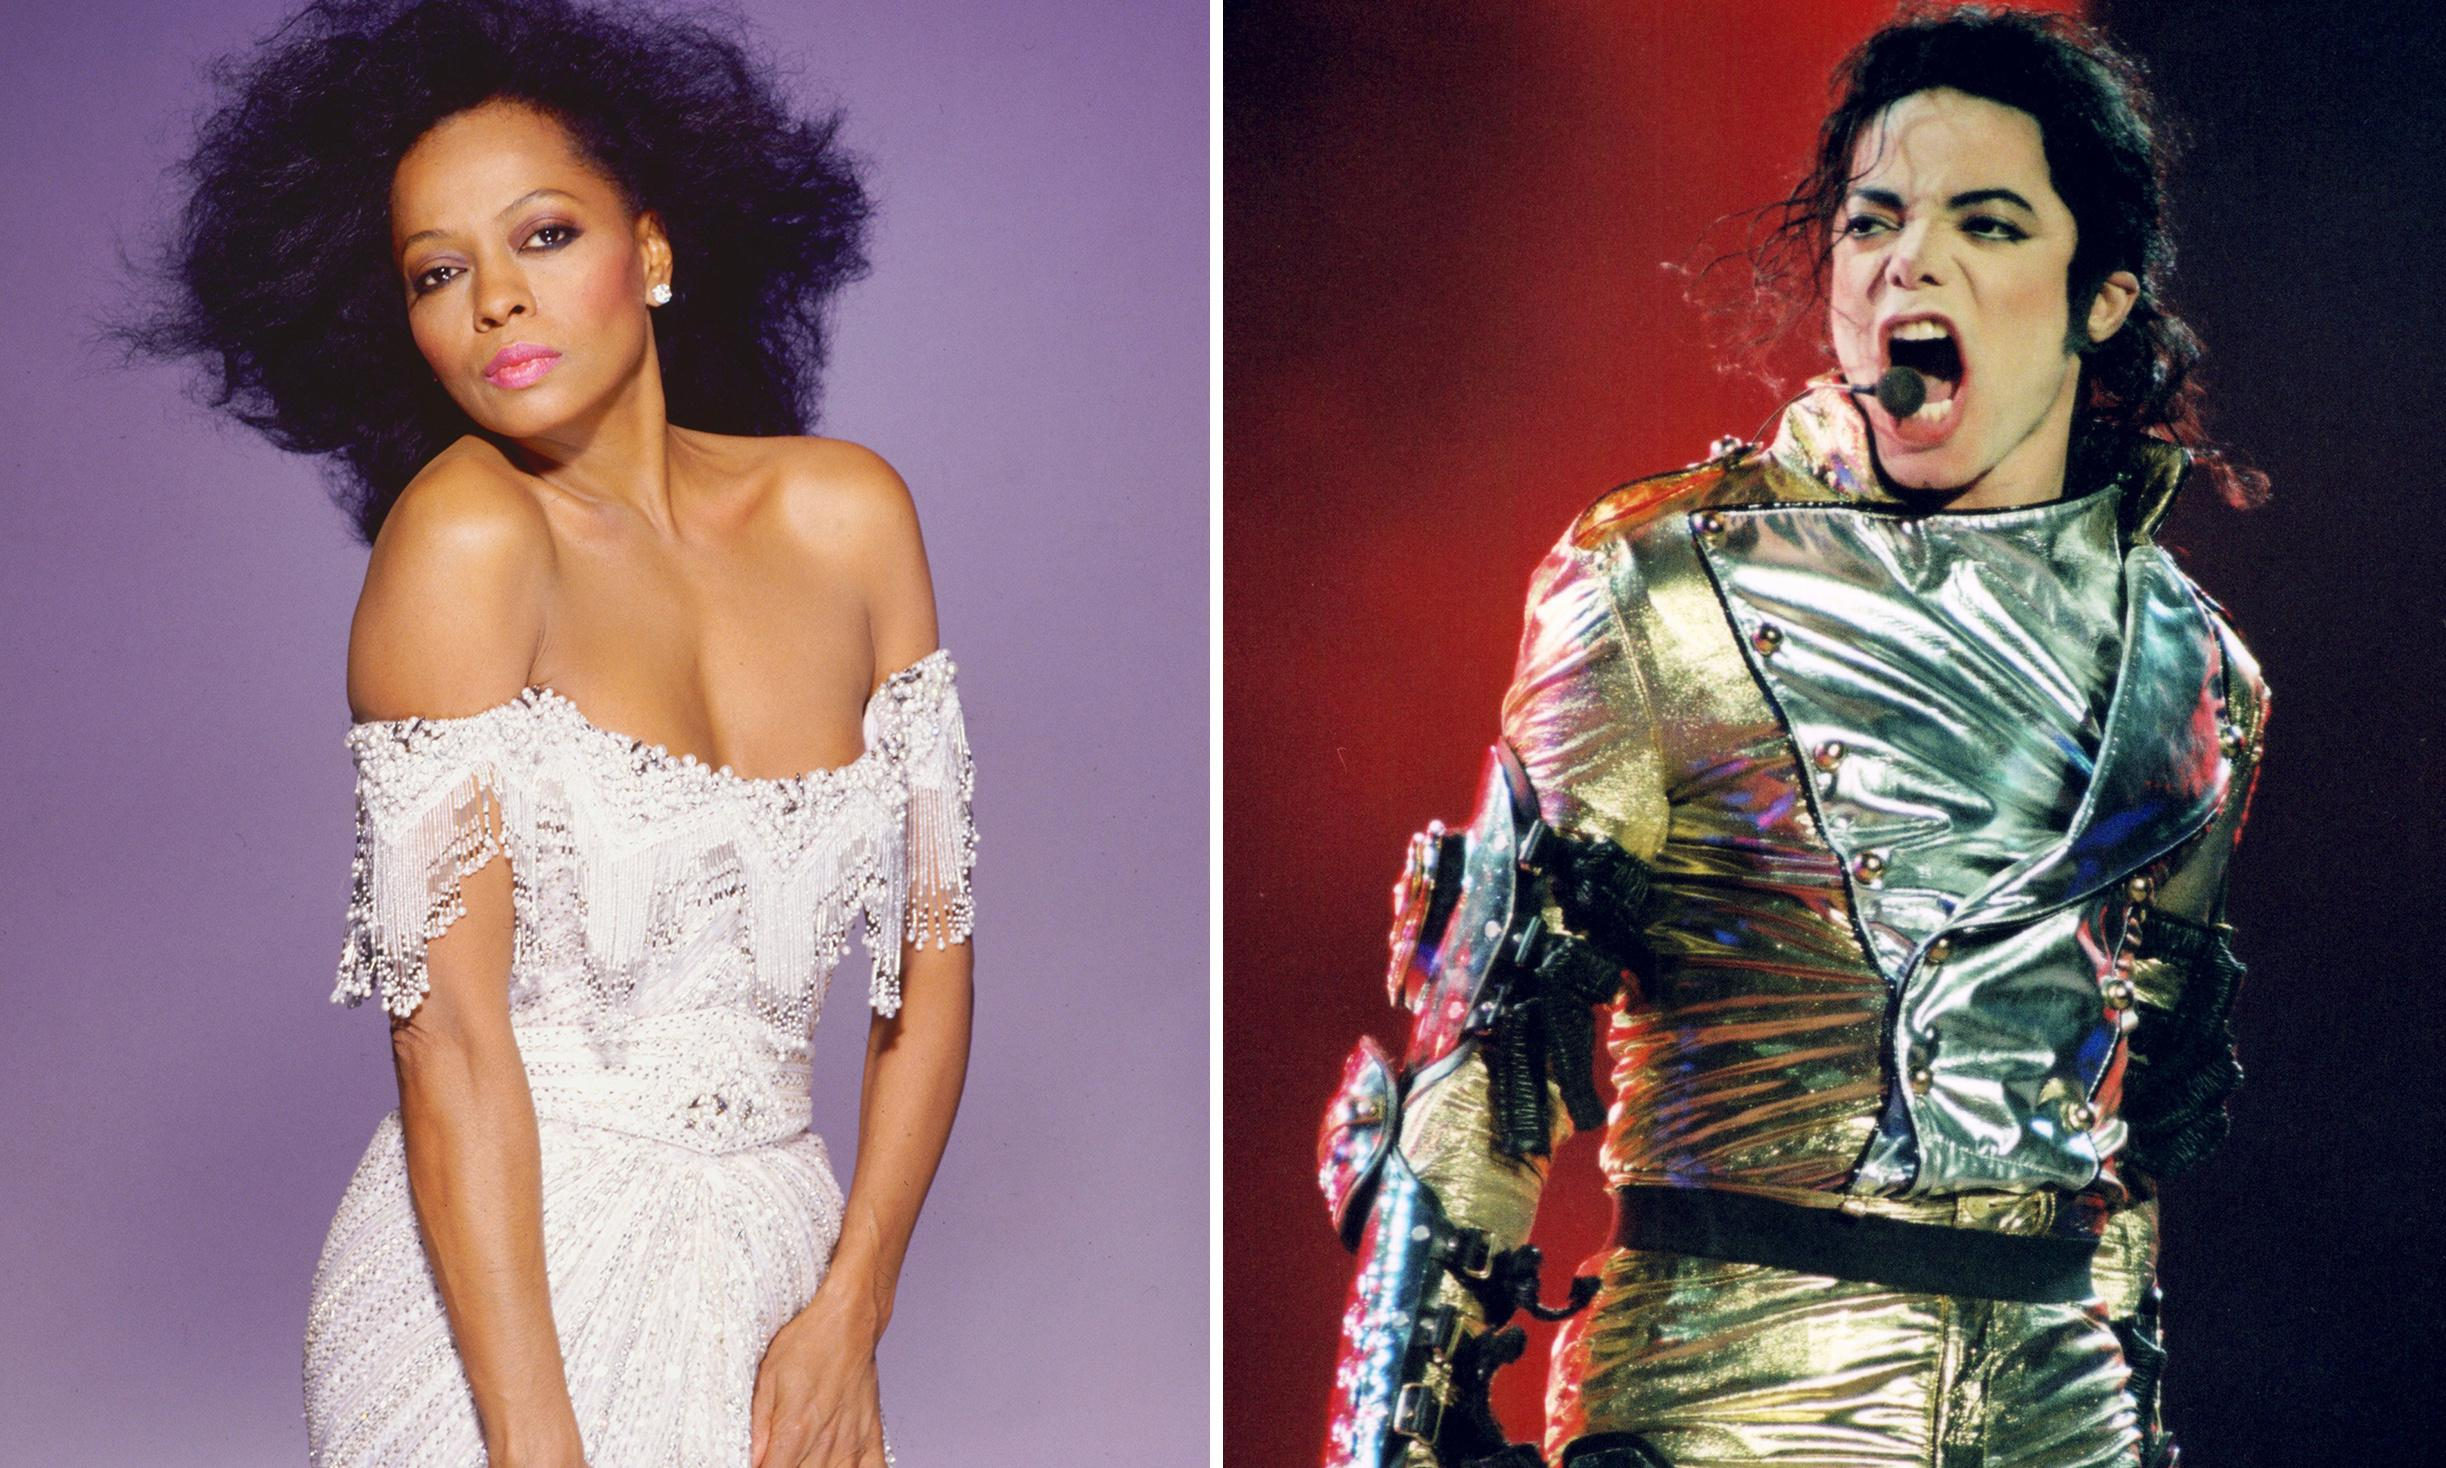 Diana Ross calls for end to criticism of Michael Jackson